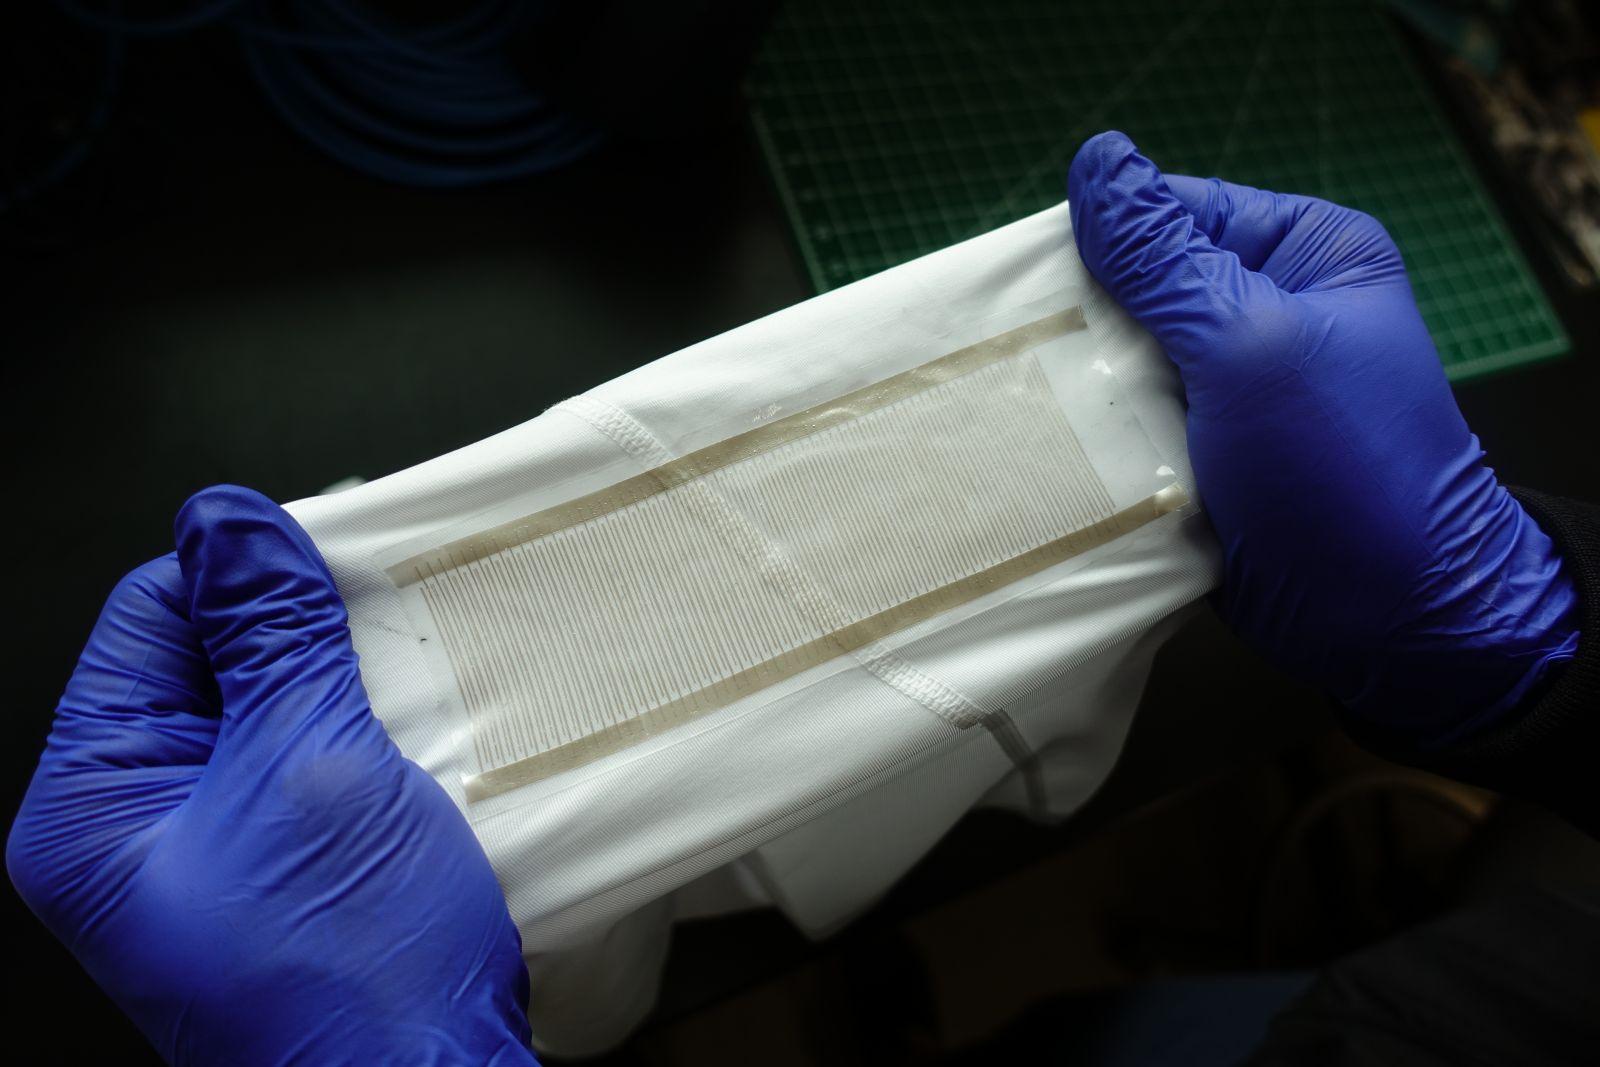 Stretchable electronics on a white shirt